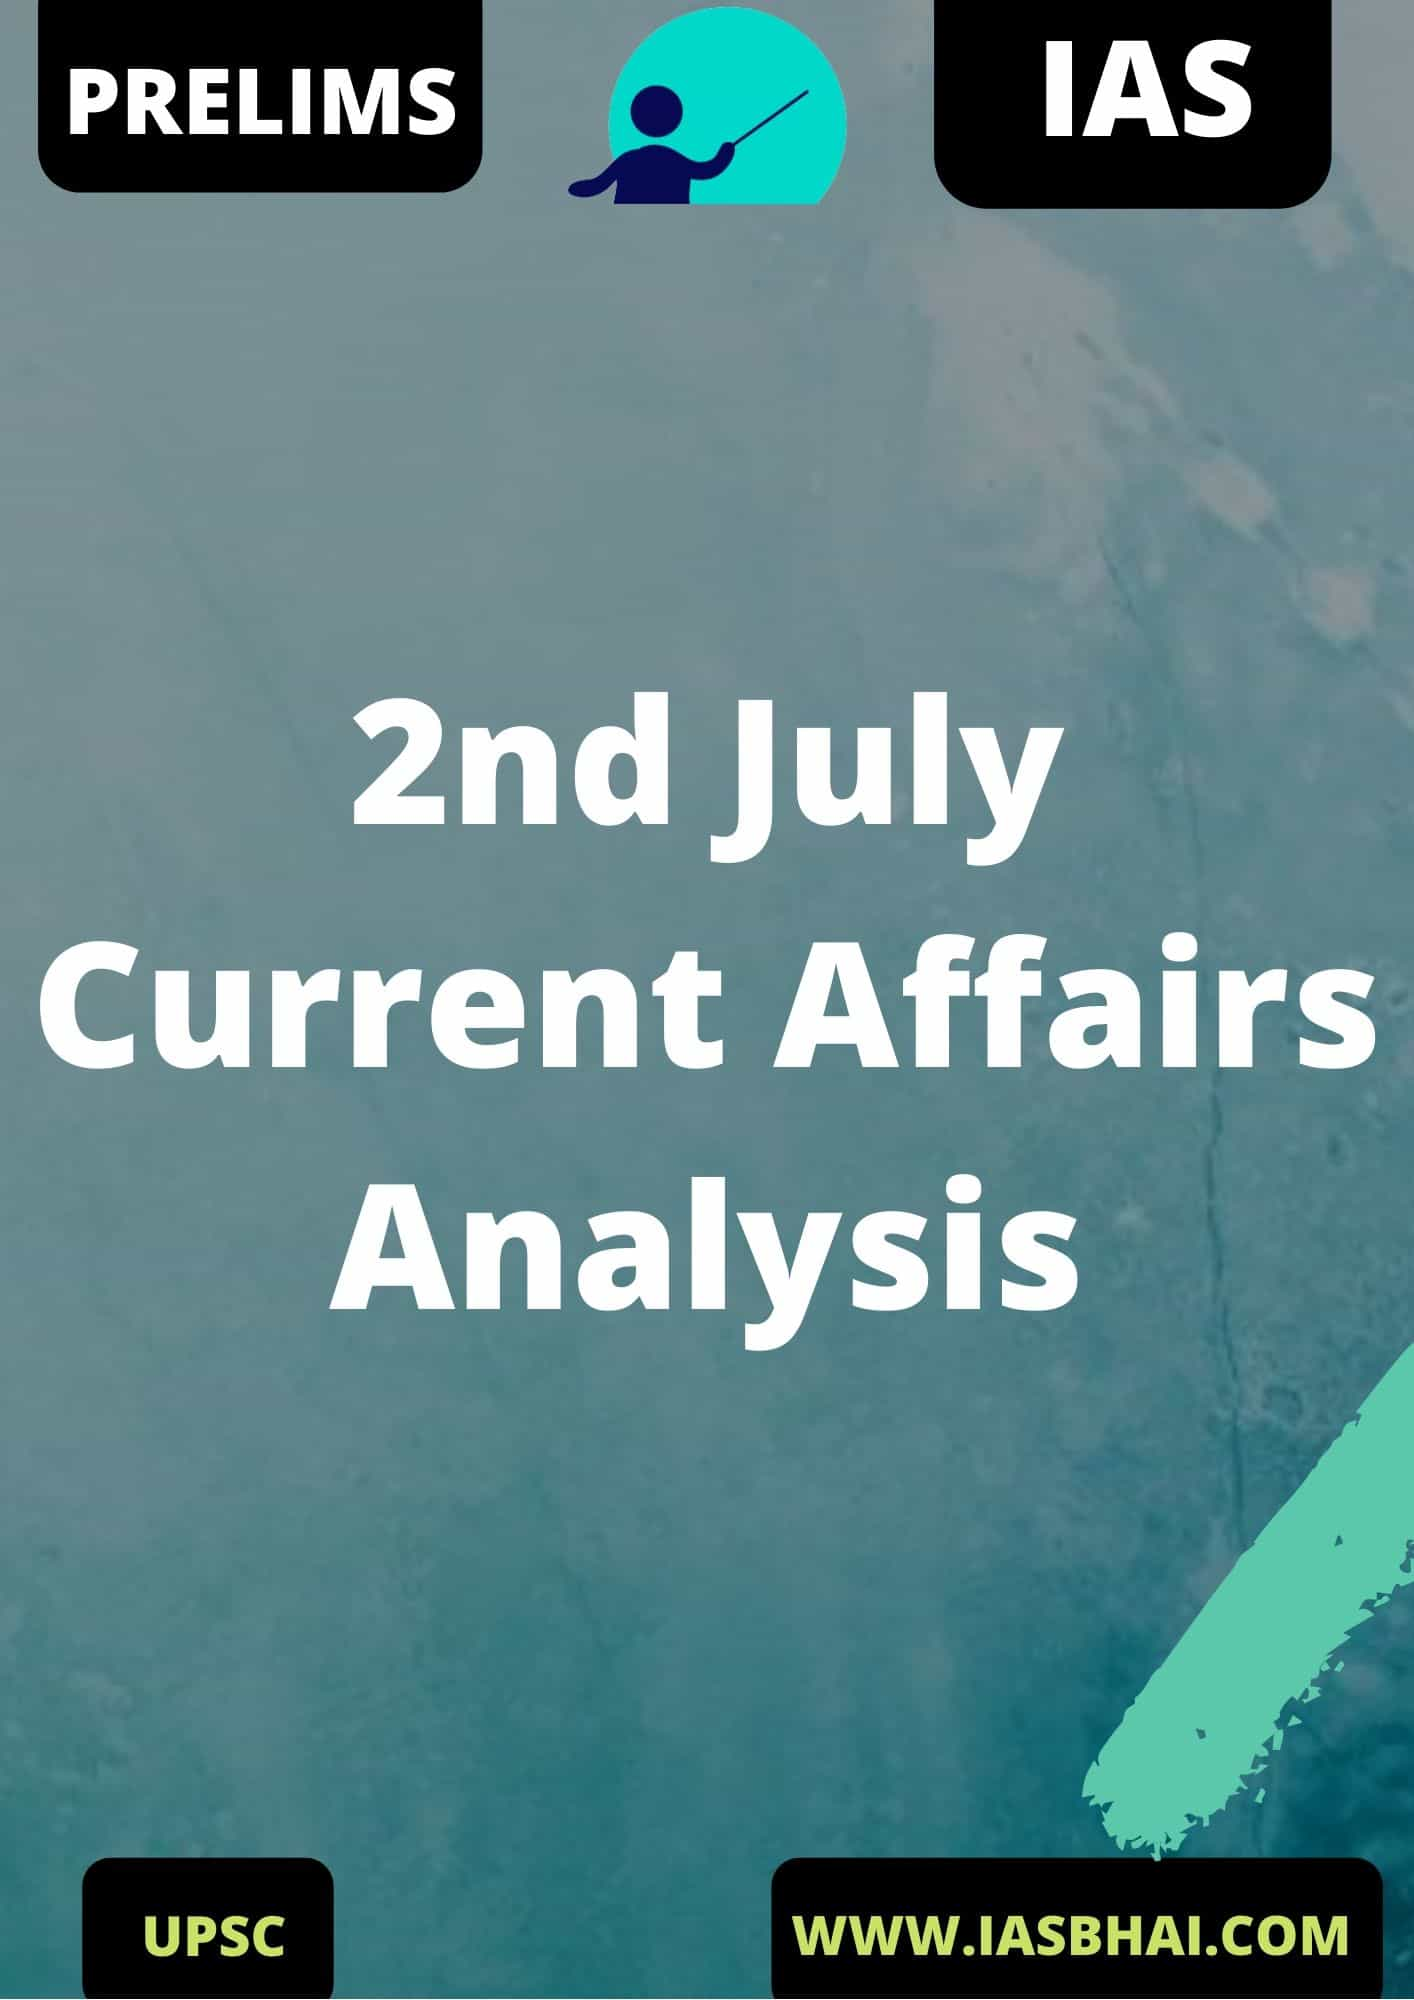 2nd July Current Affairs News Analysis Prelims & Mains 2020